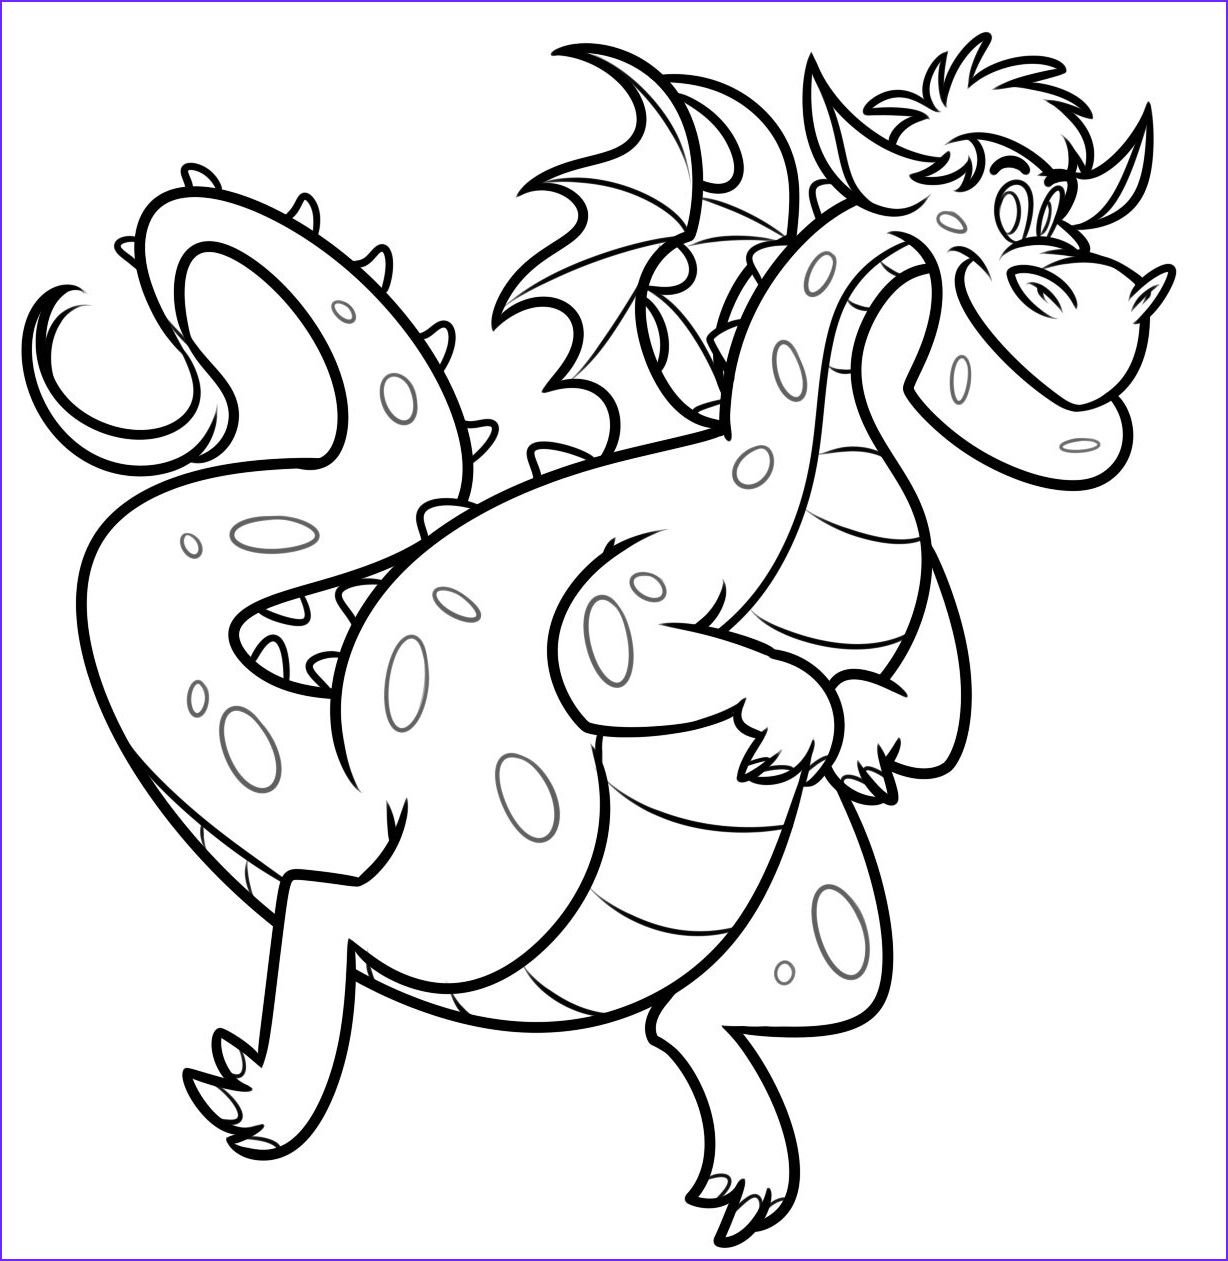 Petes Dragon Coloring Pages To And Print For Free Dragon Coloring Page Coloring Pages For Kids Coloring Pages